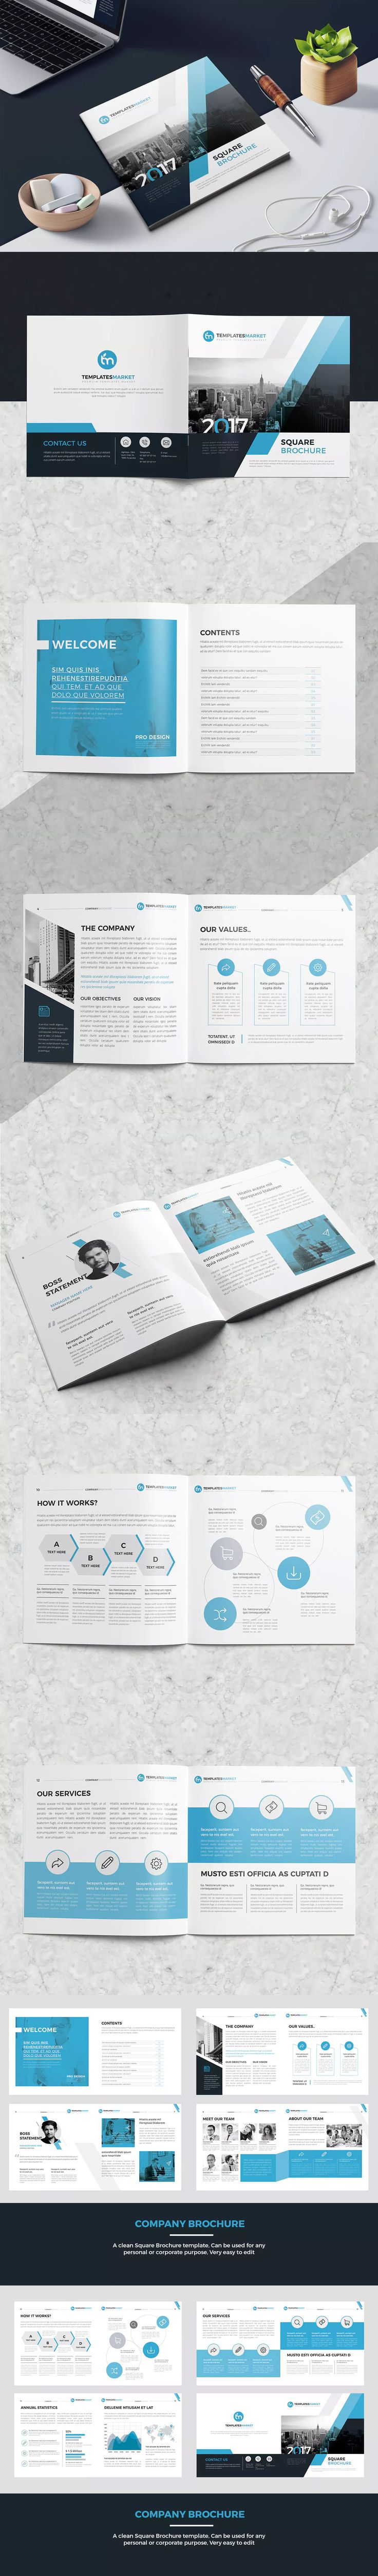 TM Square Company Profile Template InDesign INDD